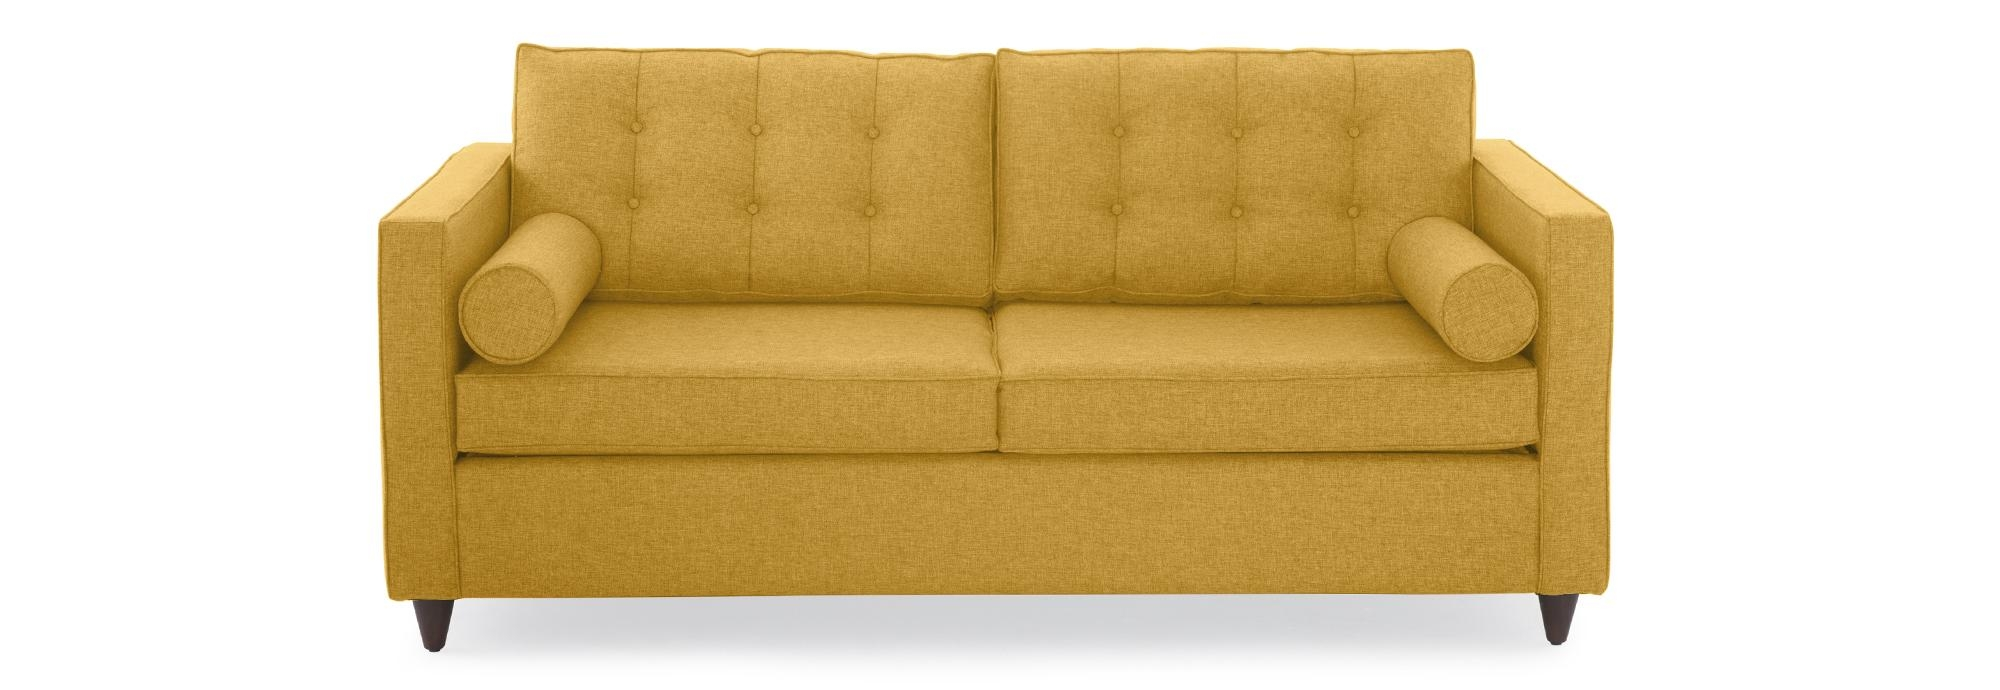 Braxton Sleeper Sofa | Joybird In Braxton Sofa (View 5 of 20)